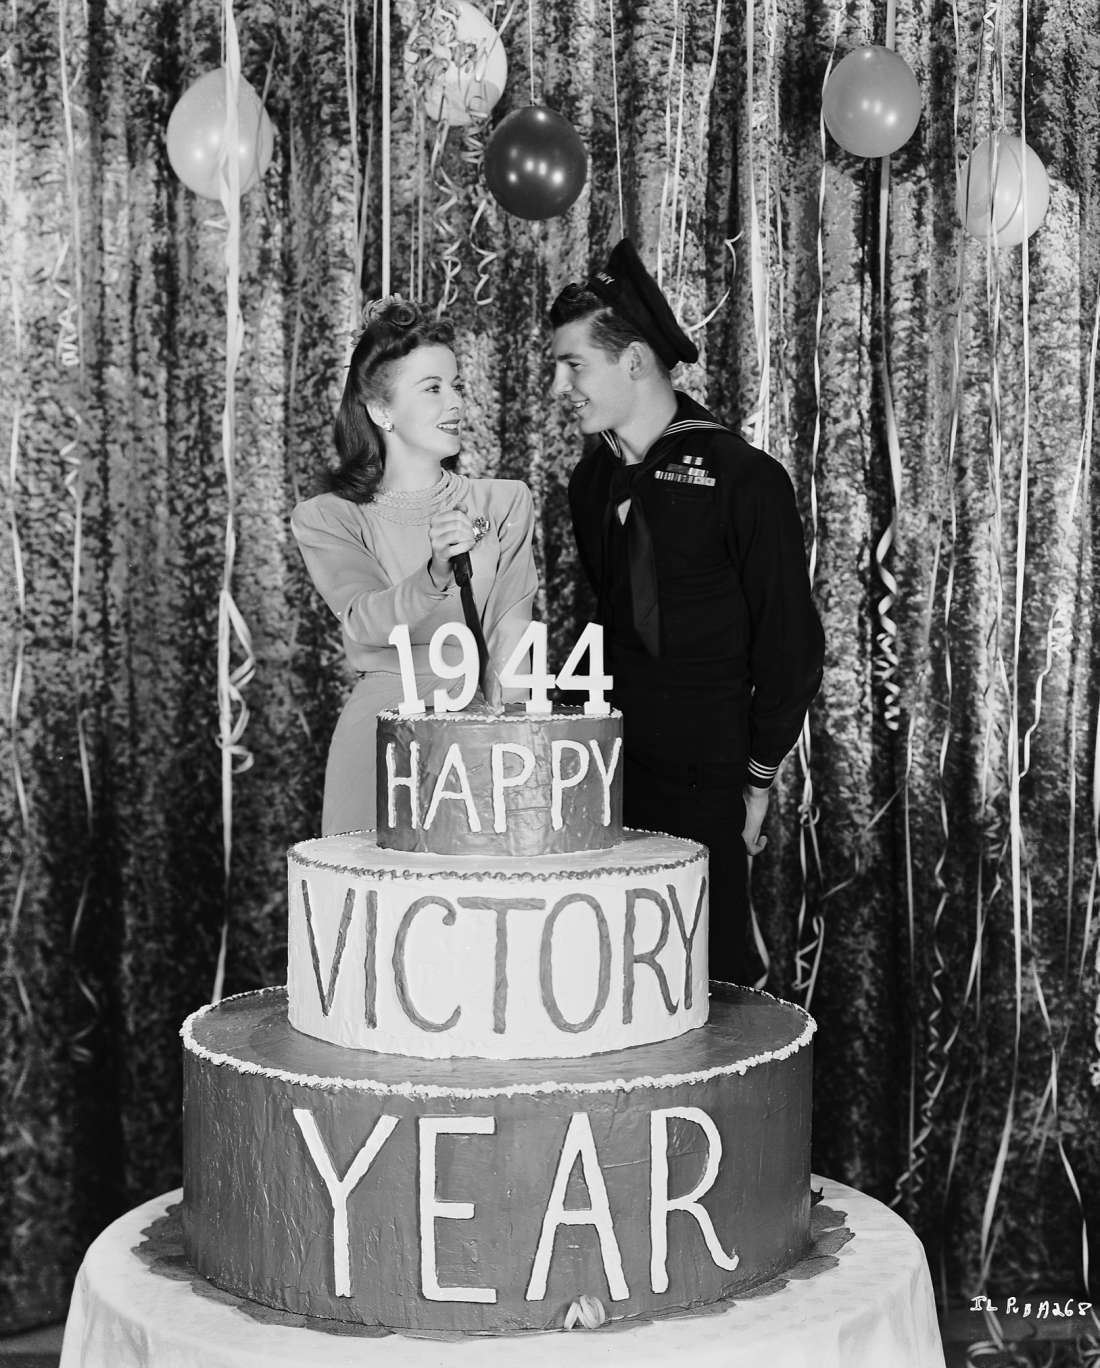 British actress Ida Lupino smiling at a friendly sailor as she cuts a cake which reads Happy Victory Year, 1944.